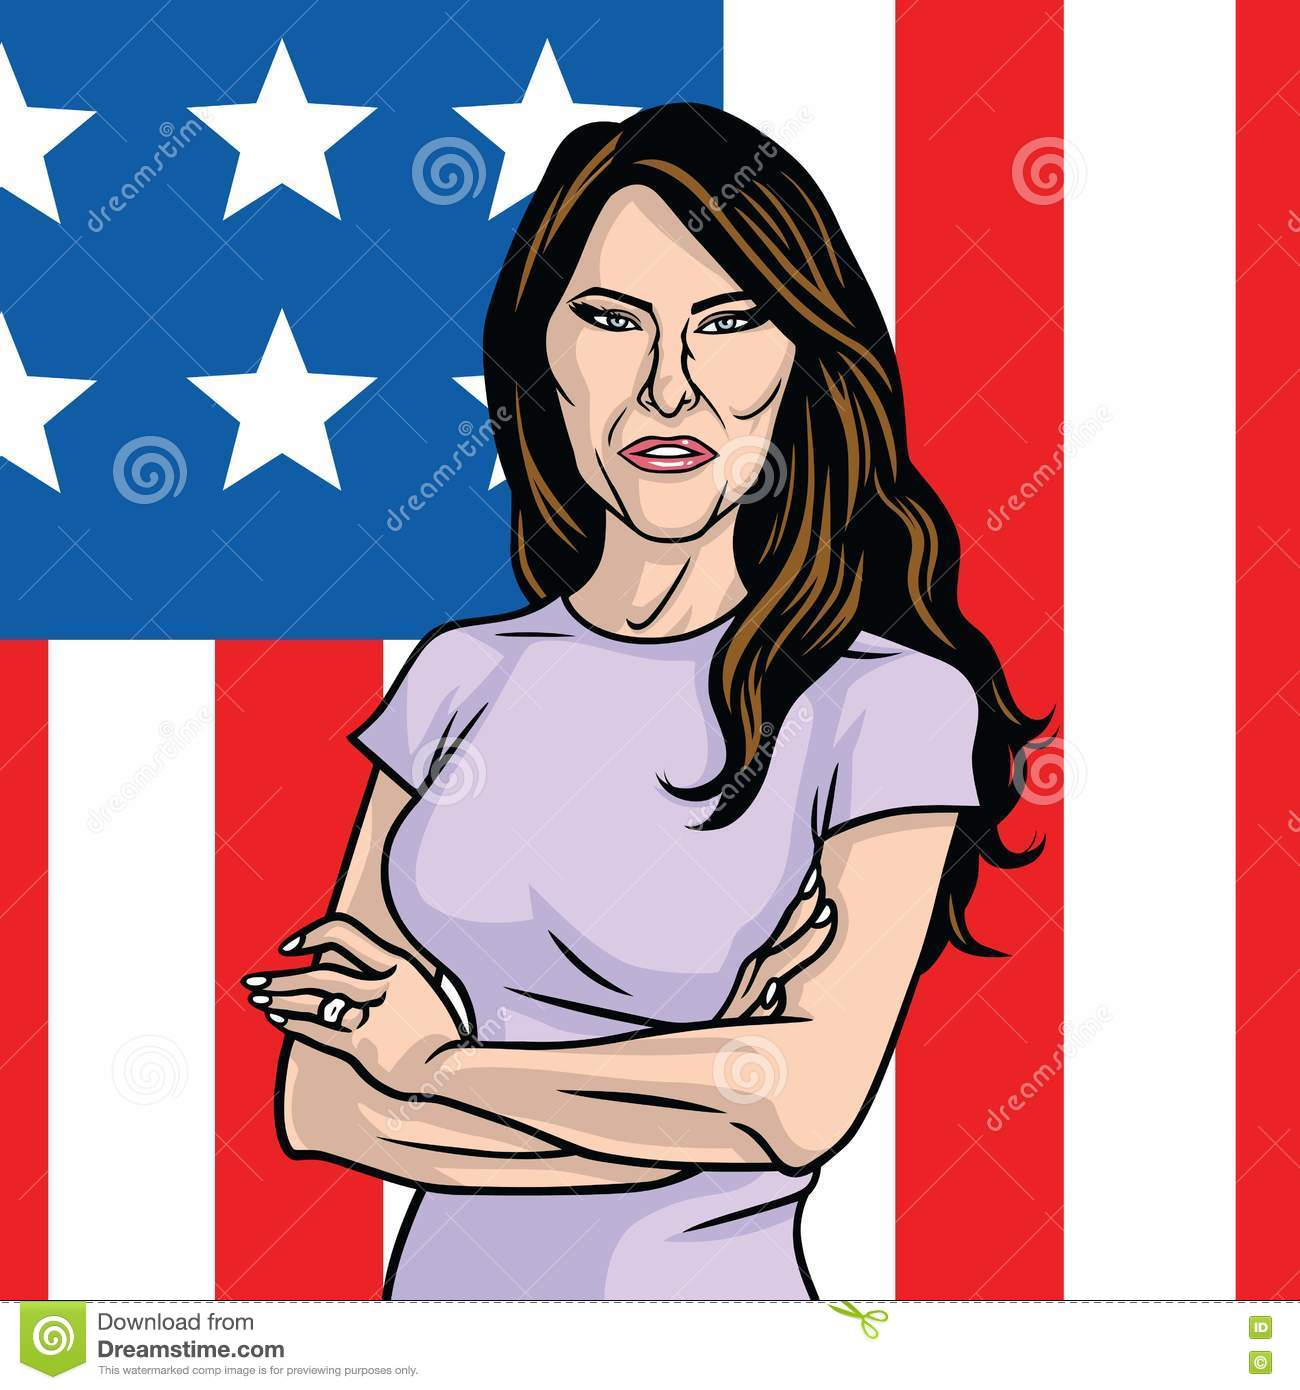 Melania Trump The First Lady Of The US. The Flag Of The United.